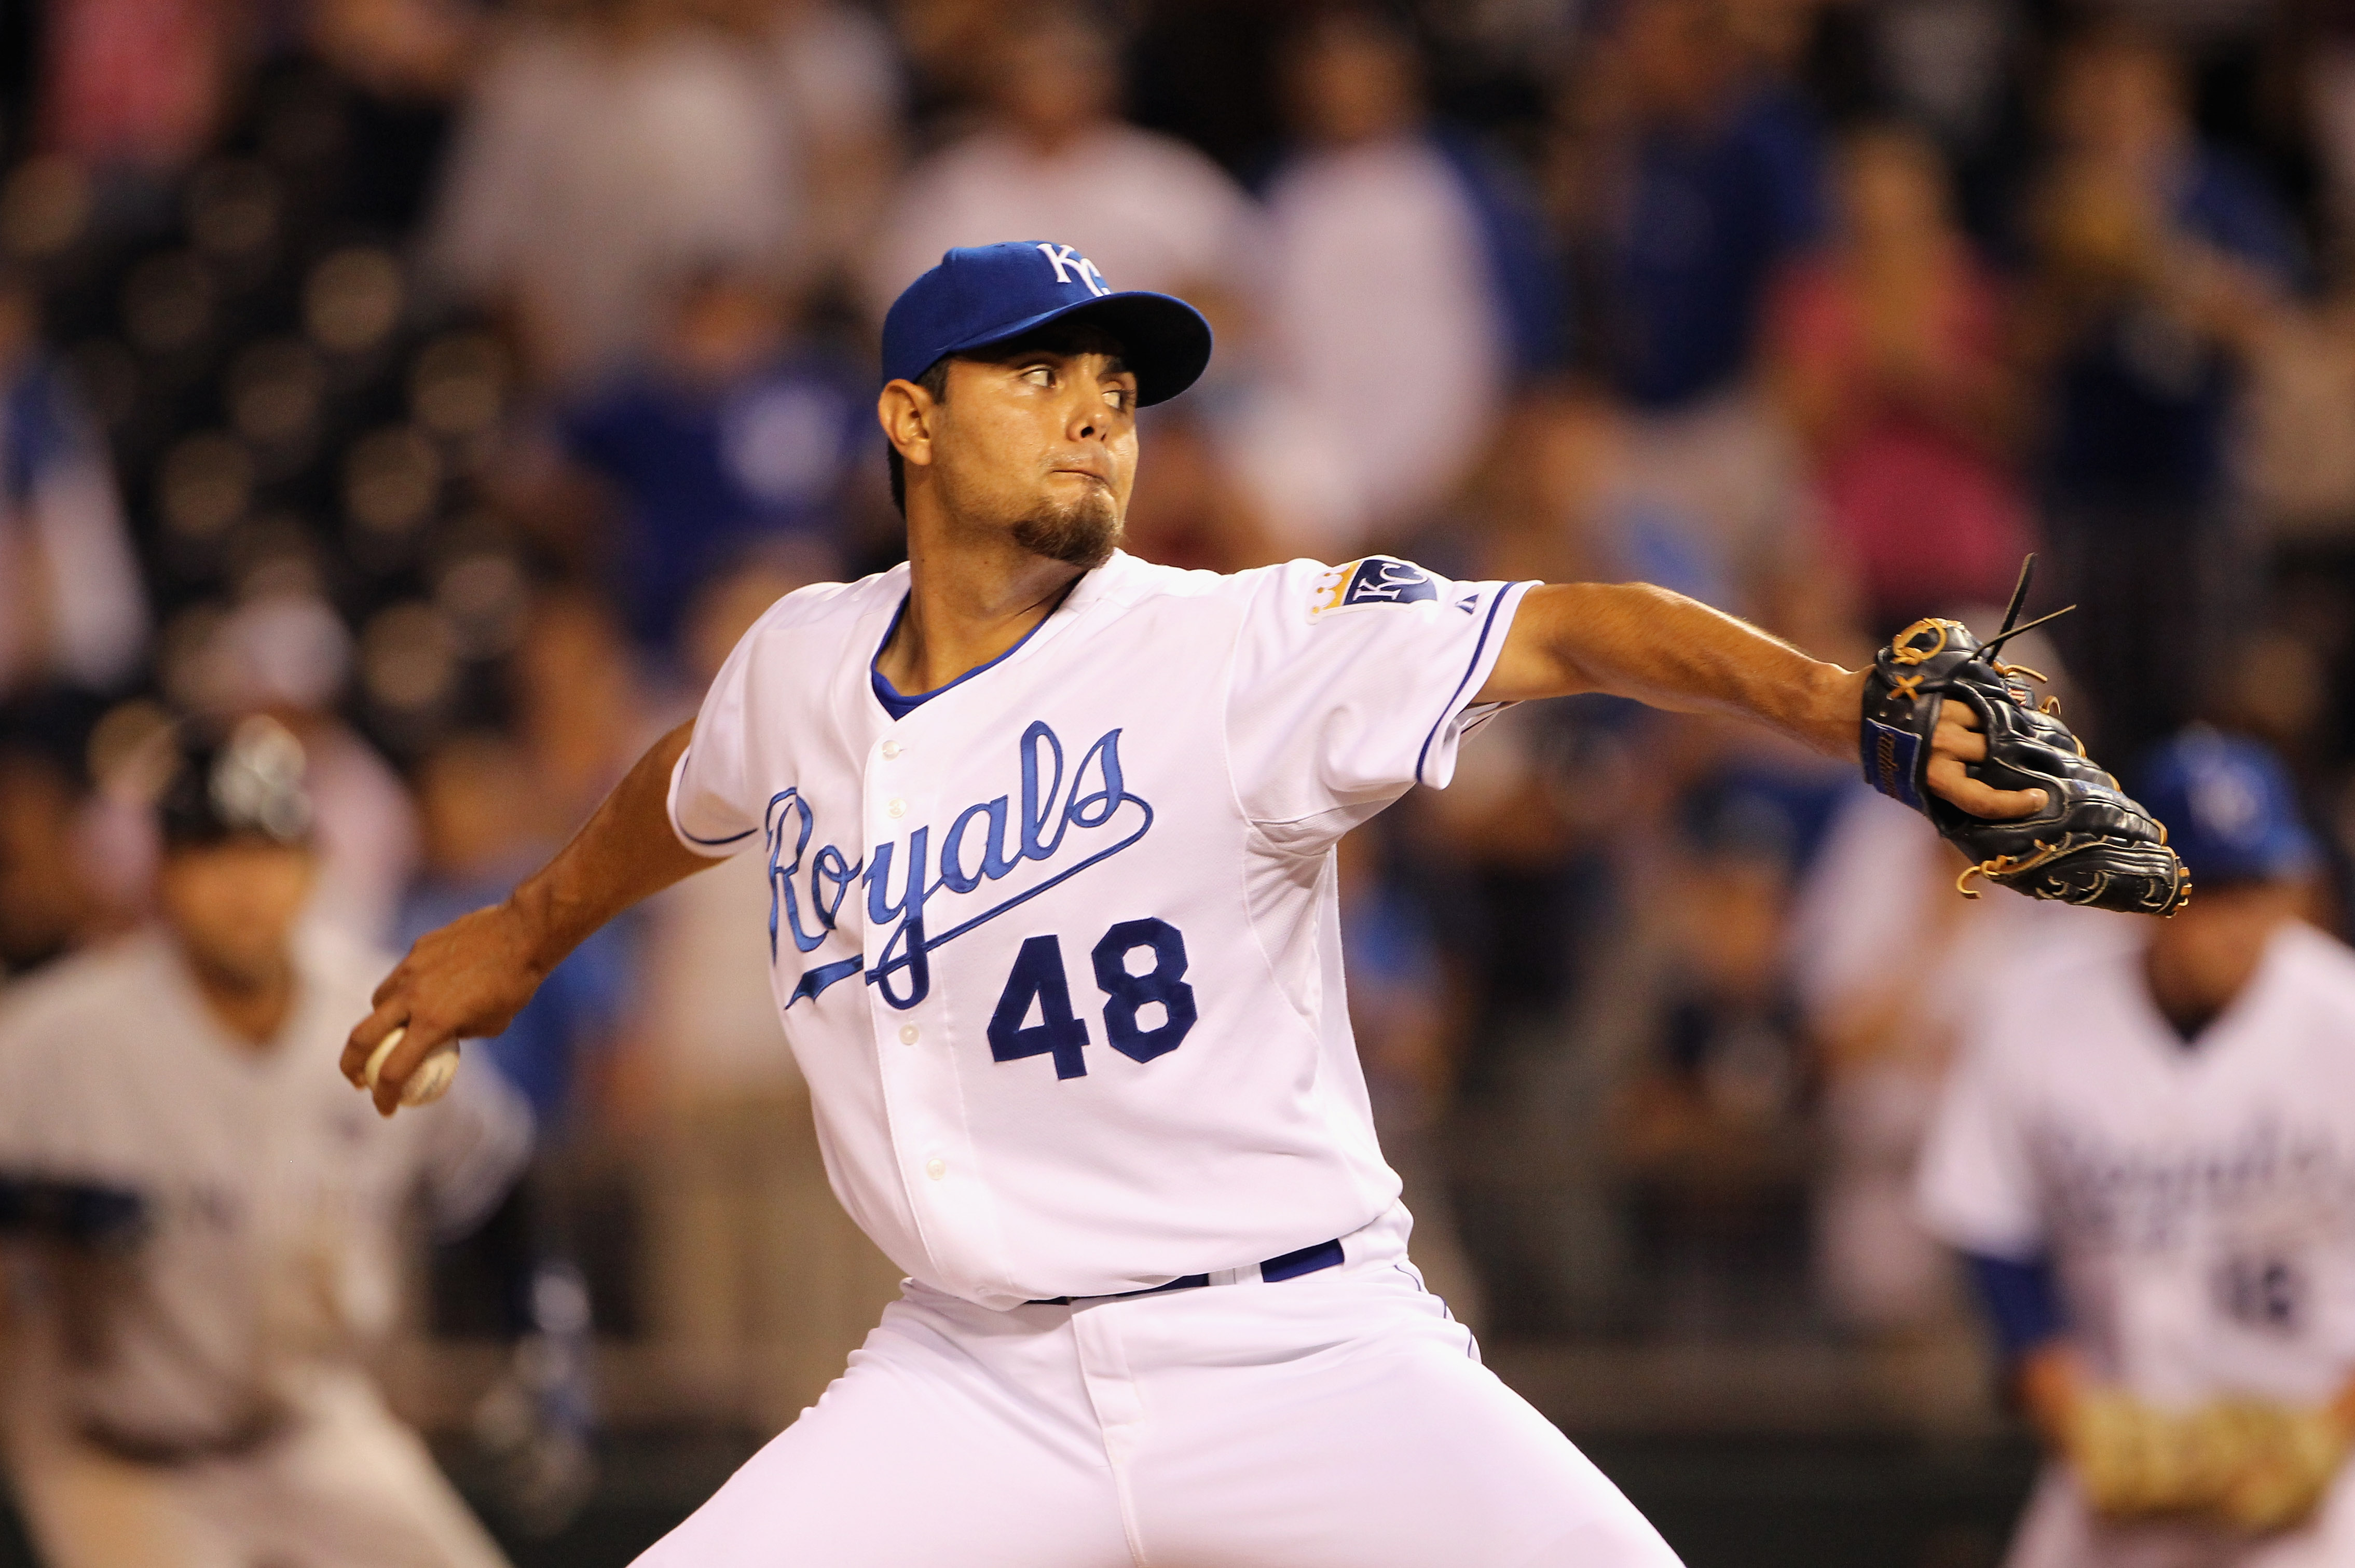 KANSAS CITY, MO - AUGUST 13:  Pitcher Joakim Soria #48 of the Kansas City Royals pitches during the game against the New York Yankees on August 13, 2010 at Kauffman Stadium in Kansas City, Missouri.  (Photo by Jamie Squire/Getty Images)